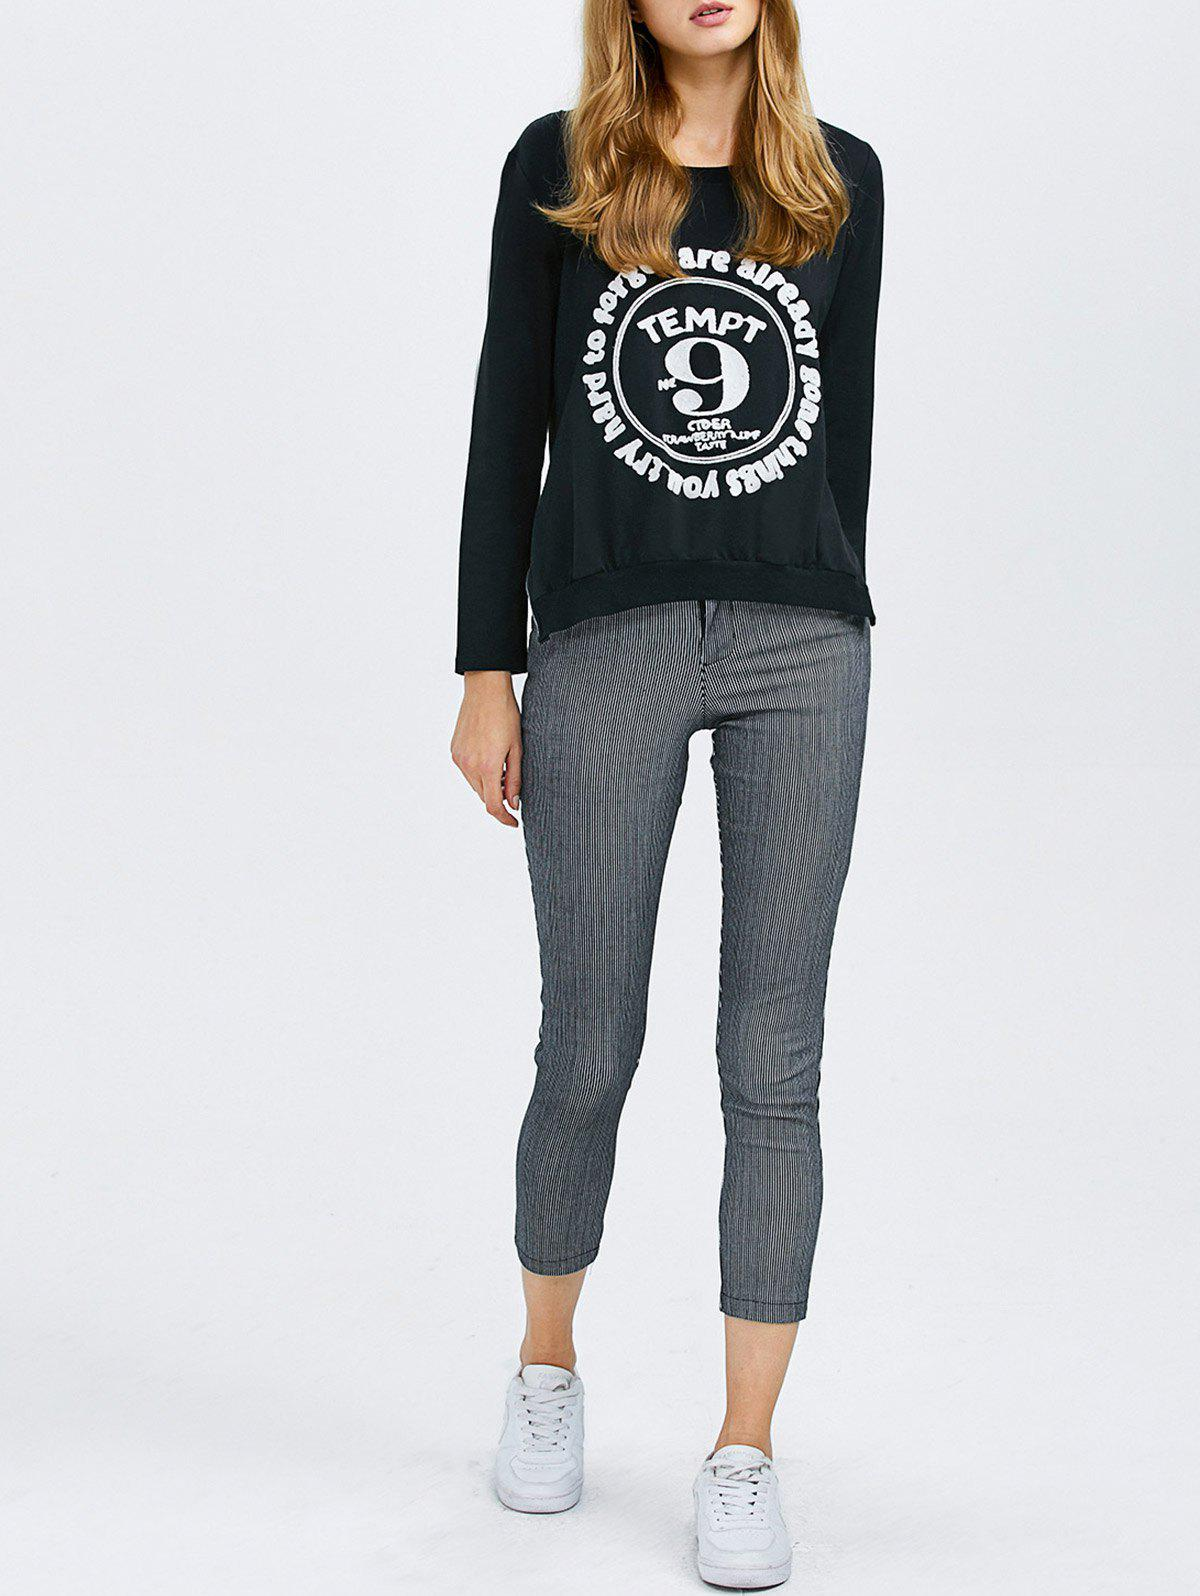 Fancy Long Sleeve Graphic Tee With Stripe Pants